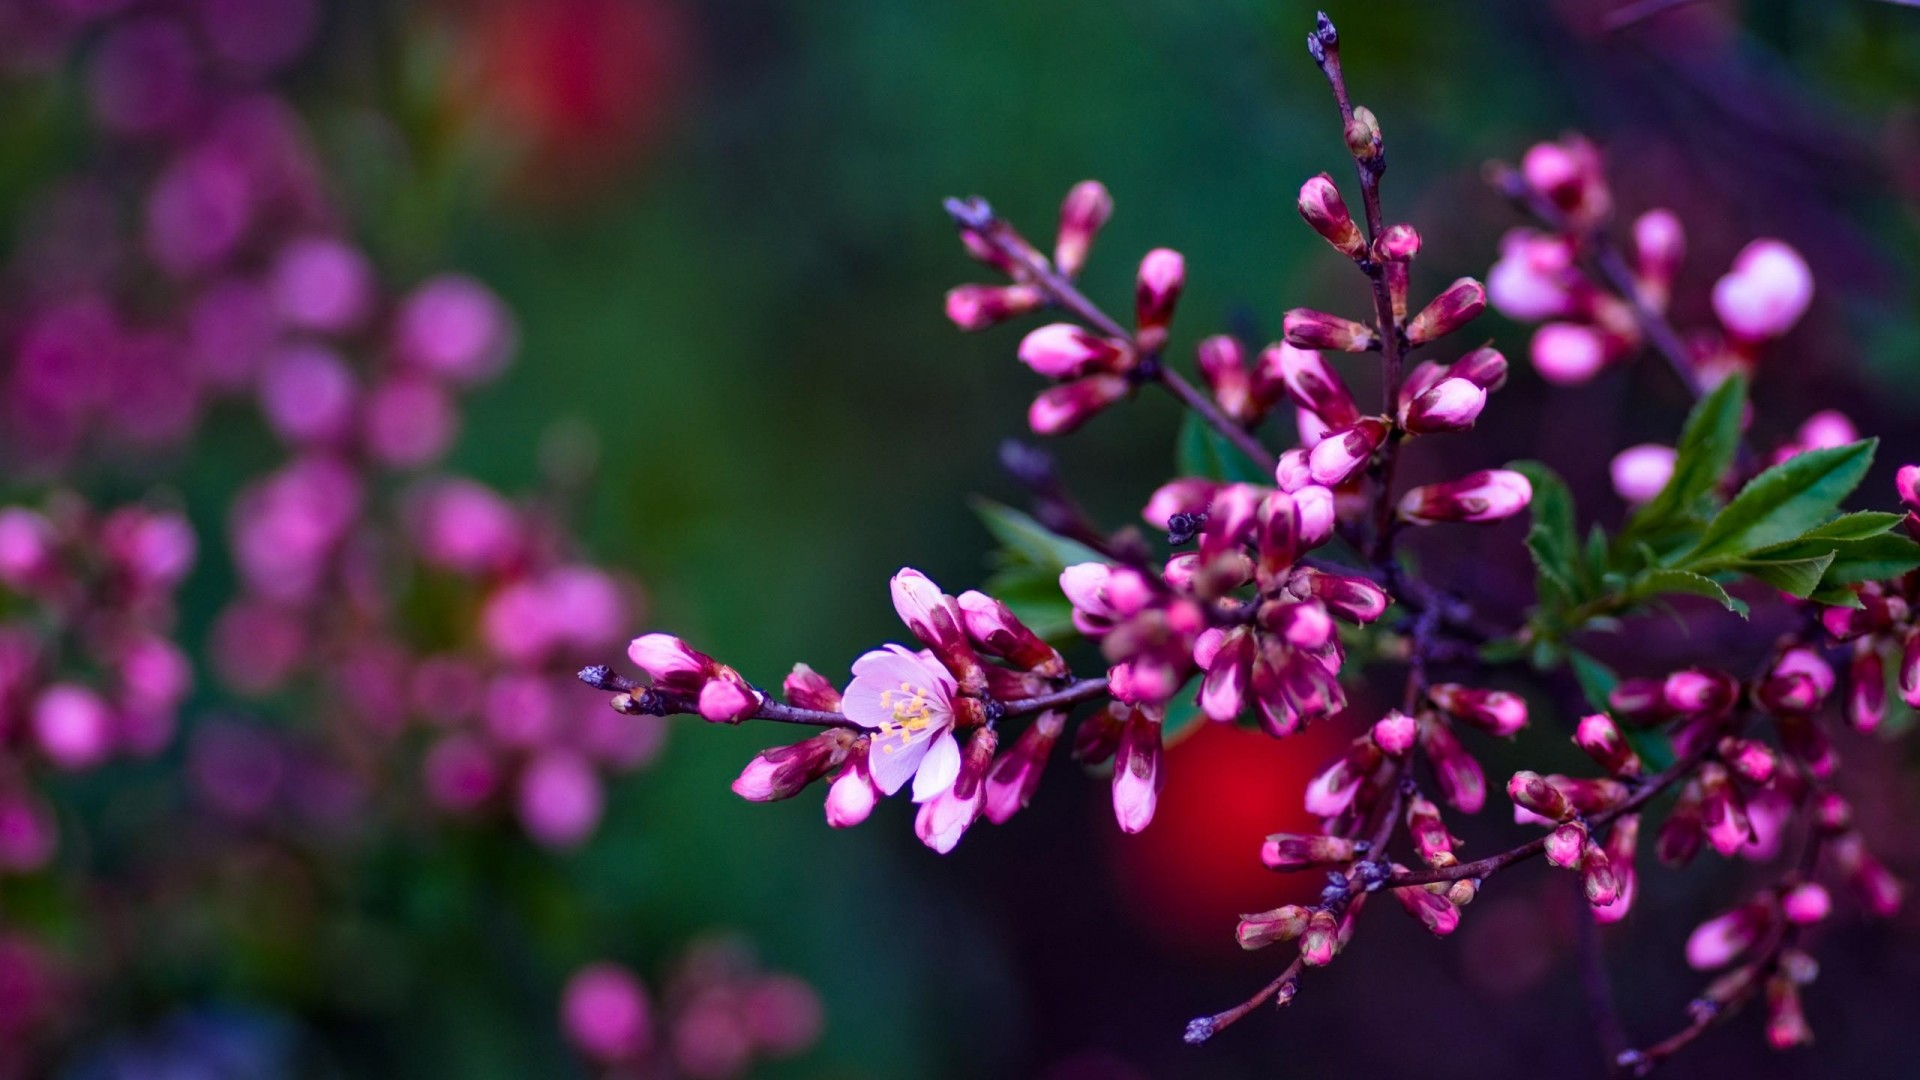 Spring Flowers Wallpapers HD Pictures One HD Wallpaper Pictures 1920x1080